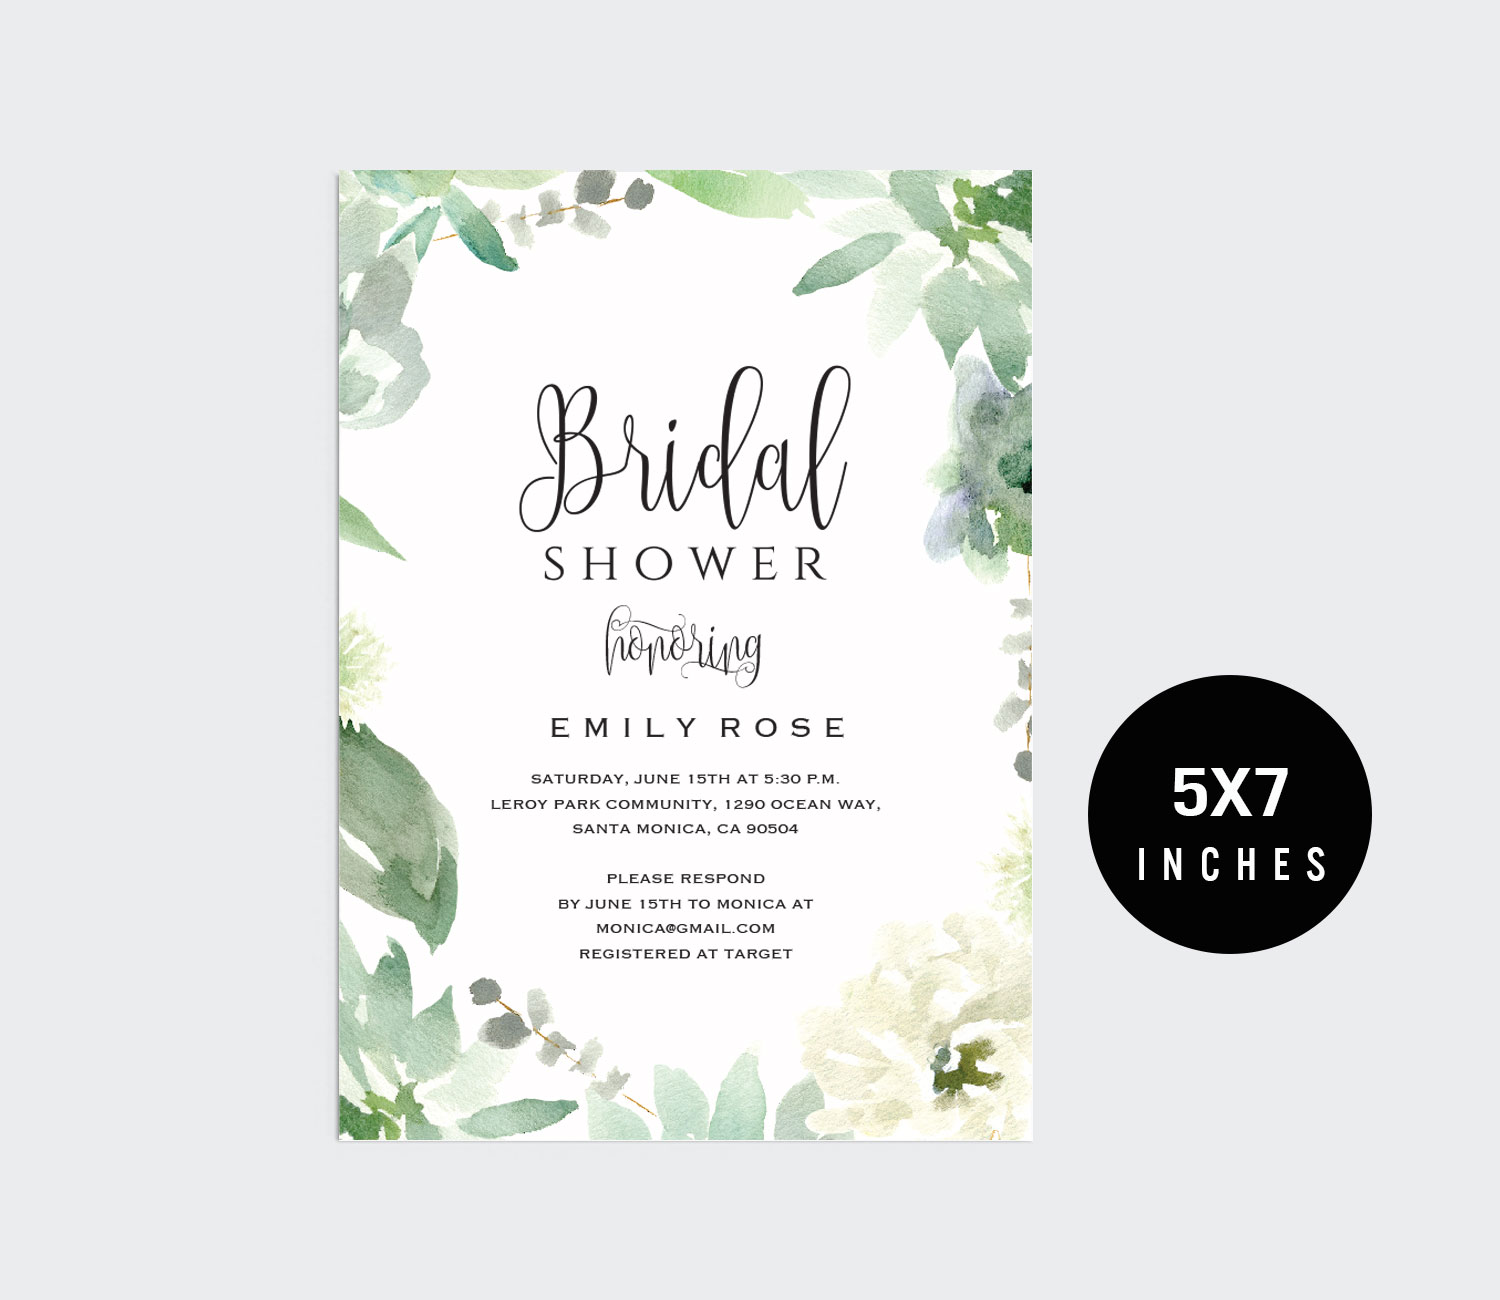 Bridal Shower Invitation Template example image 3